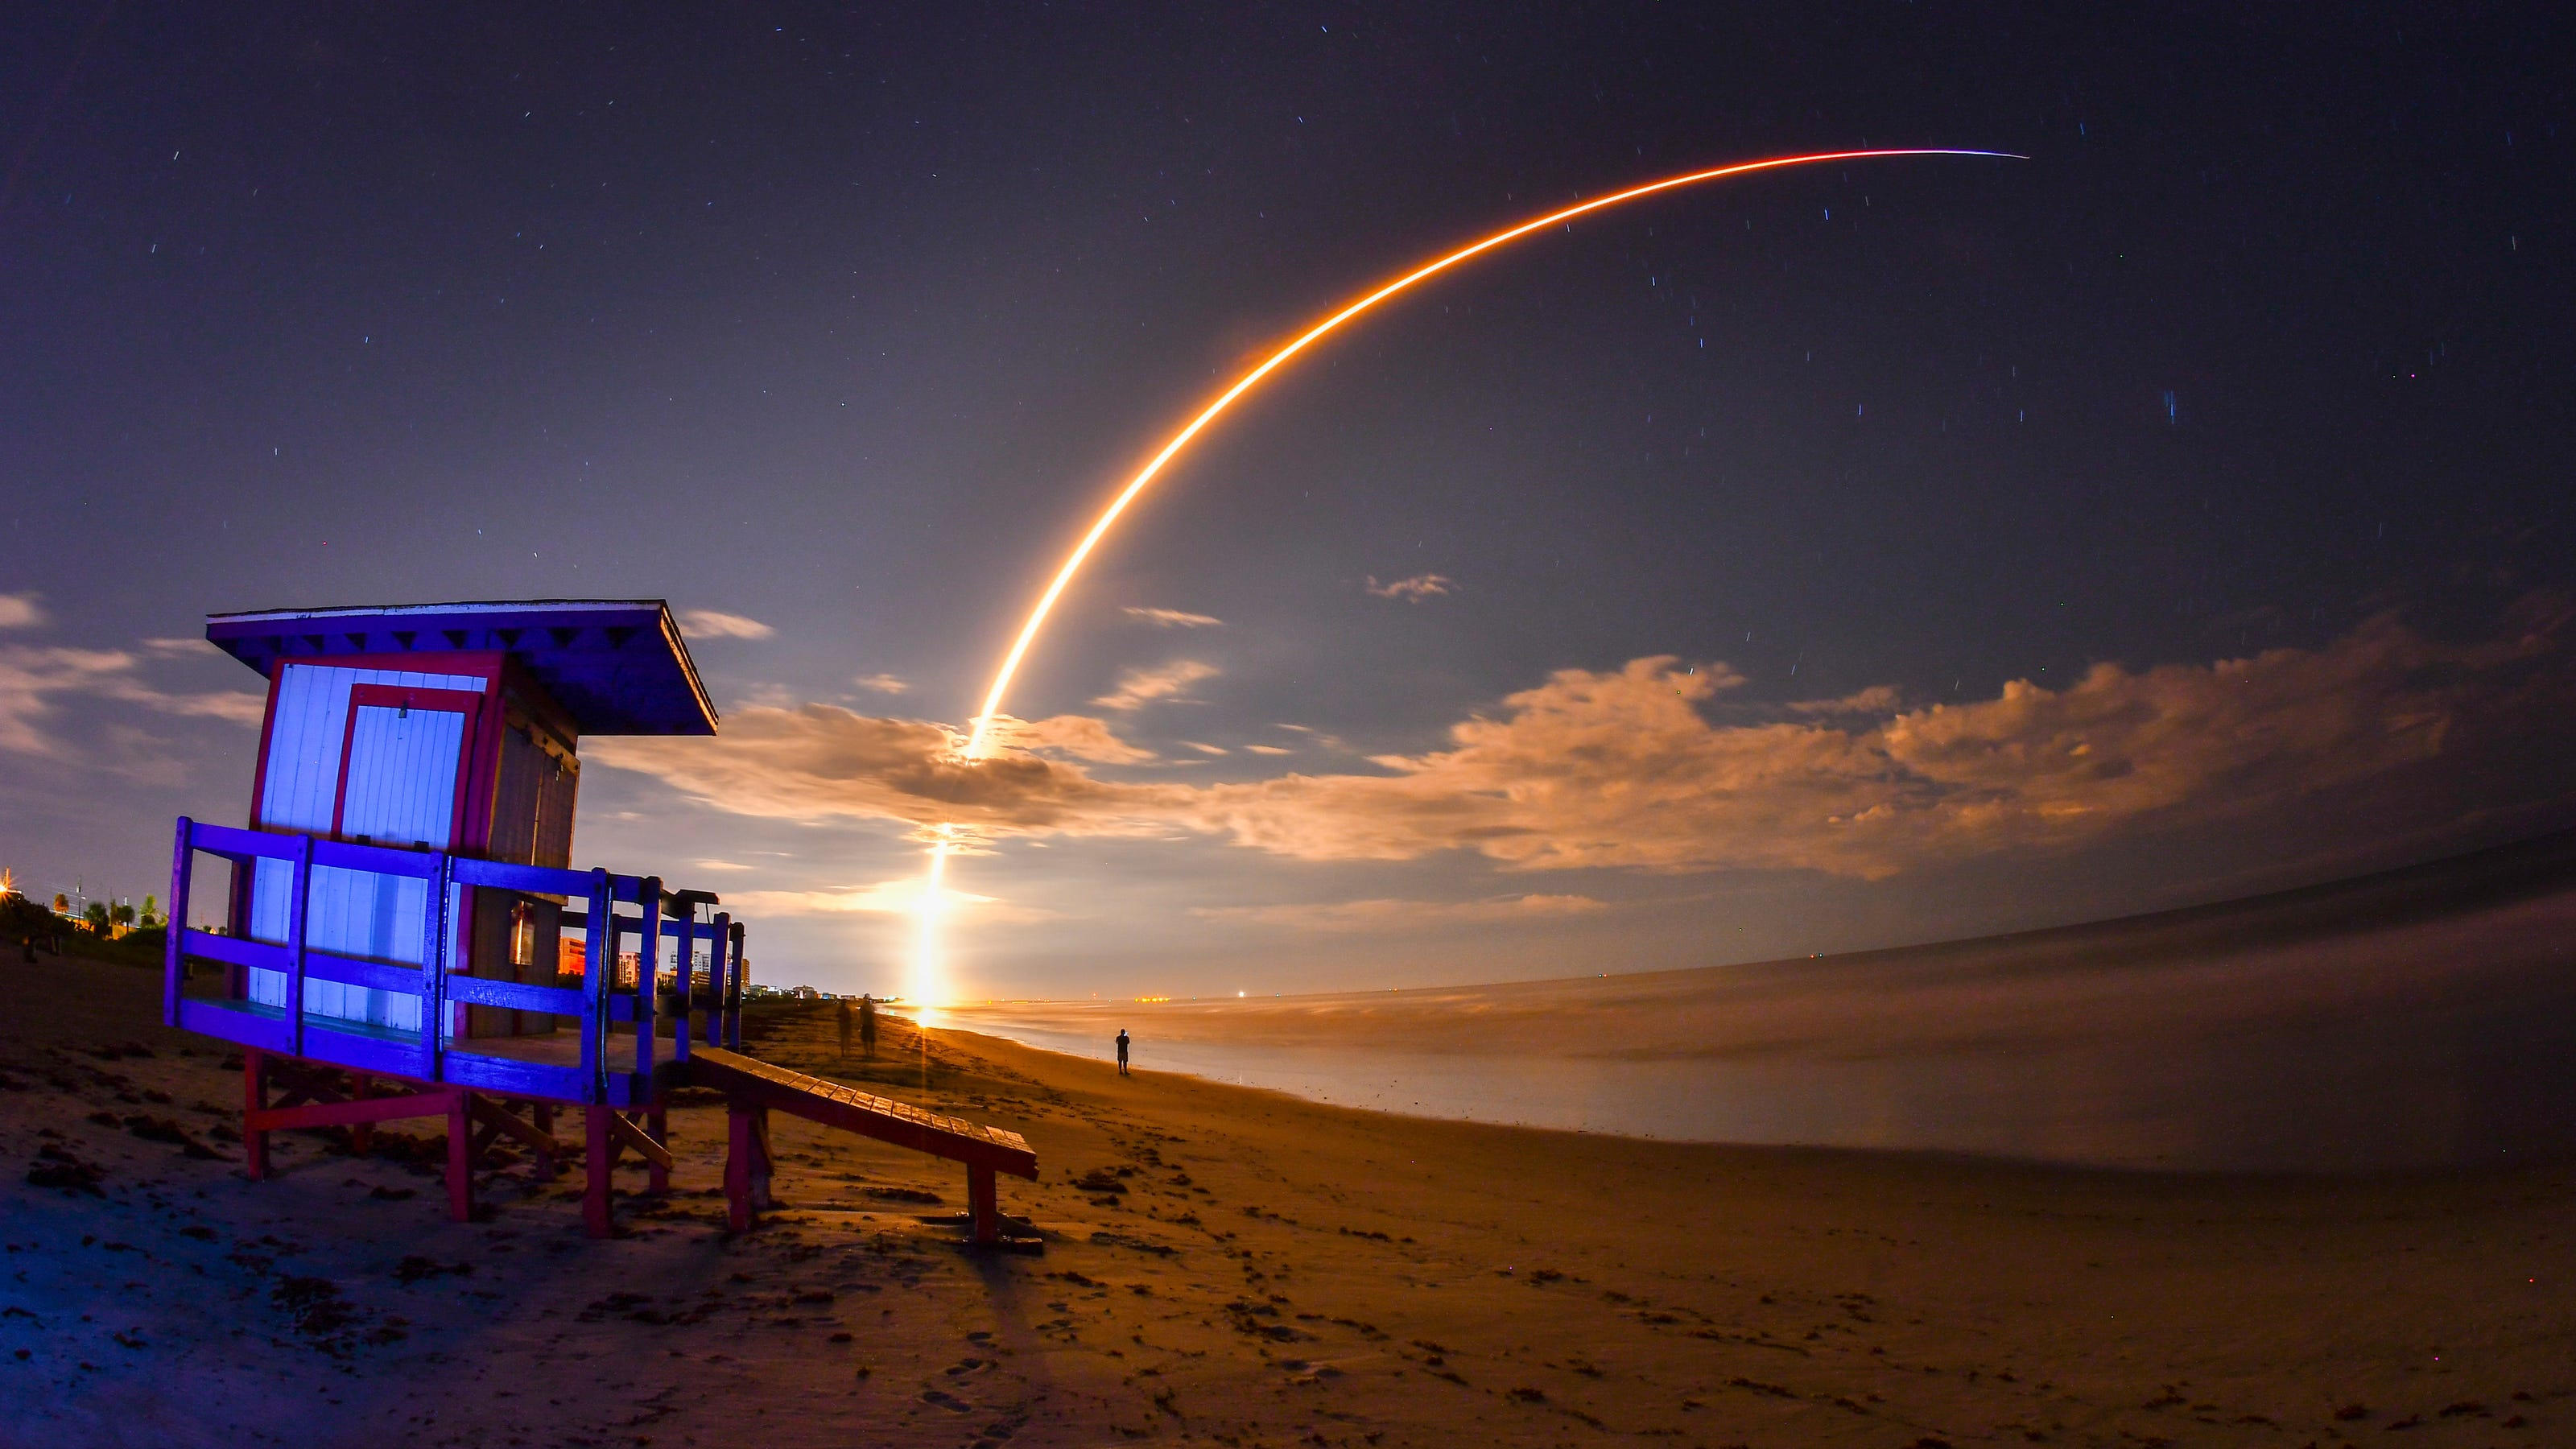 Rocket launch schedule: Upcoming Florida launches and landings